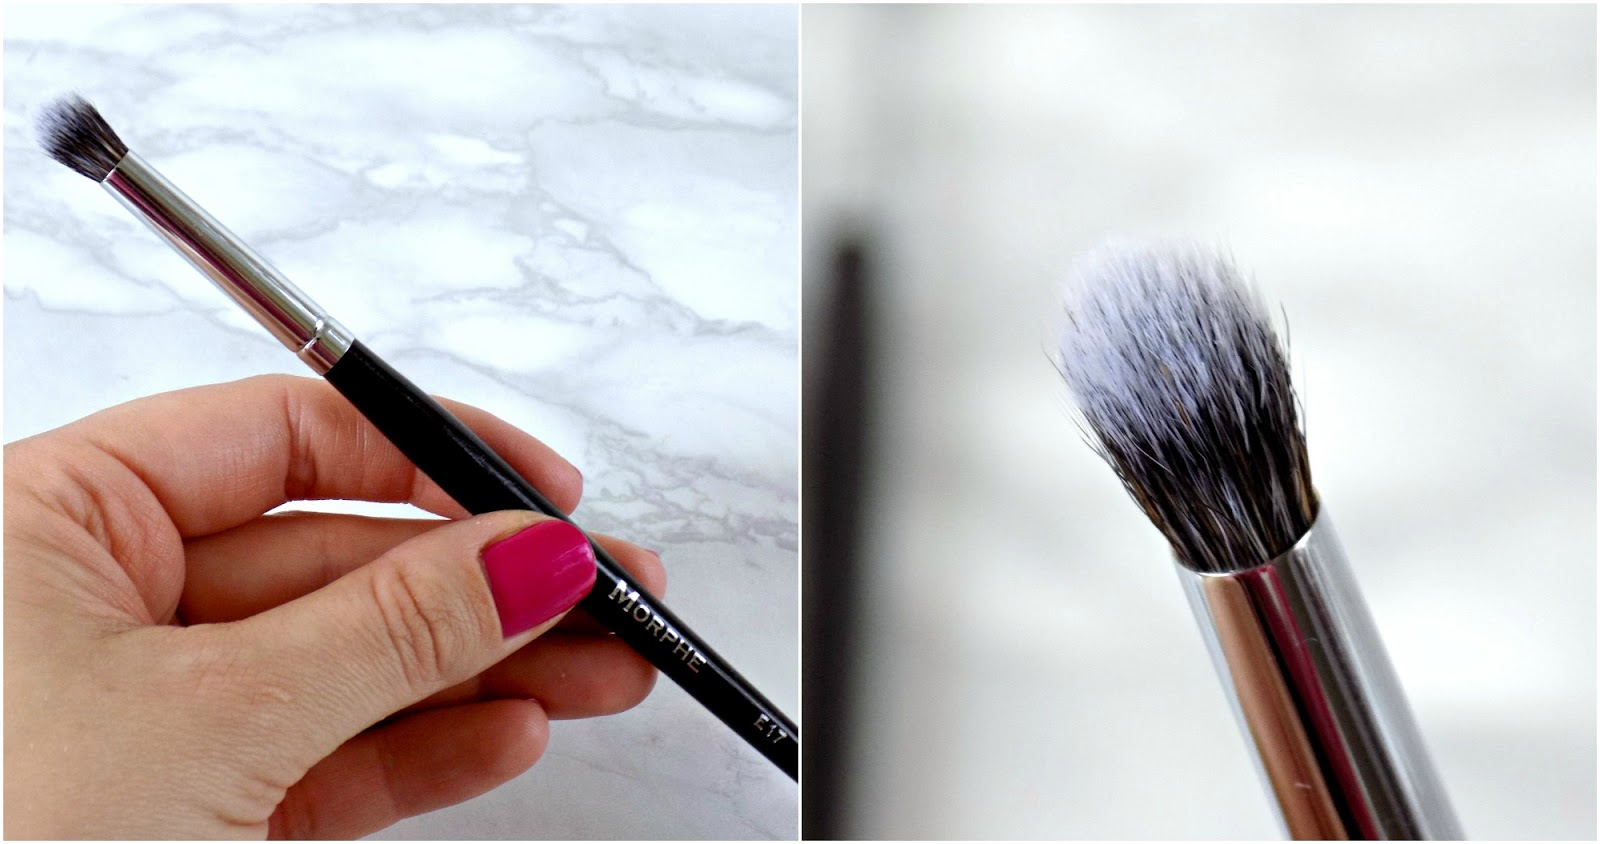 Morphe Brushes E17